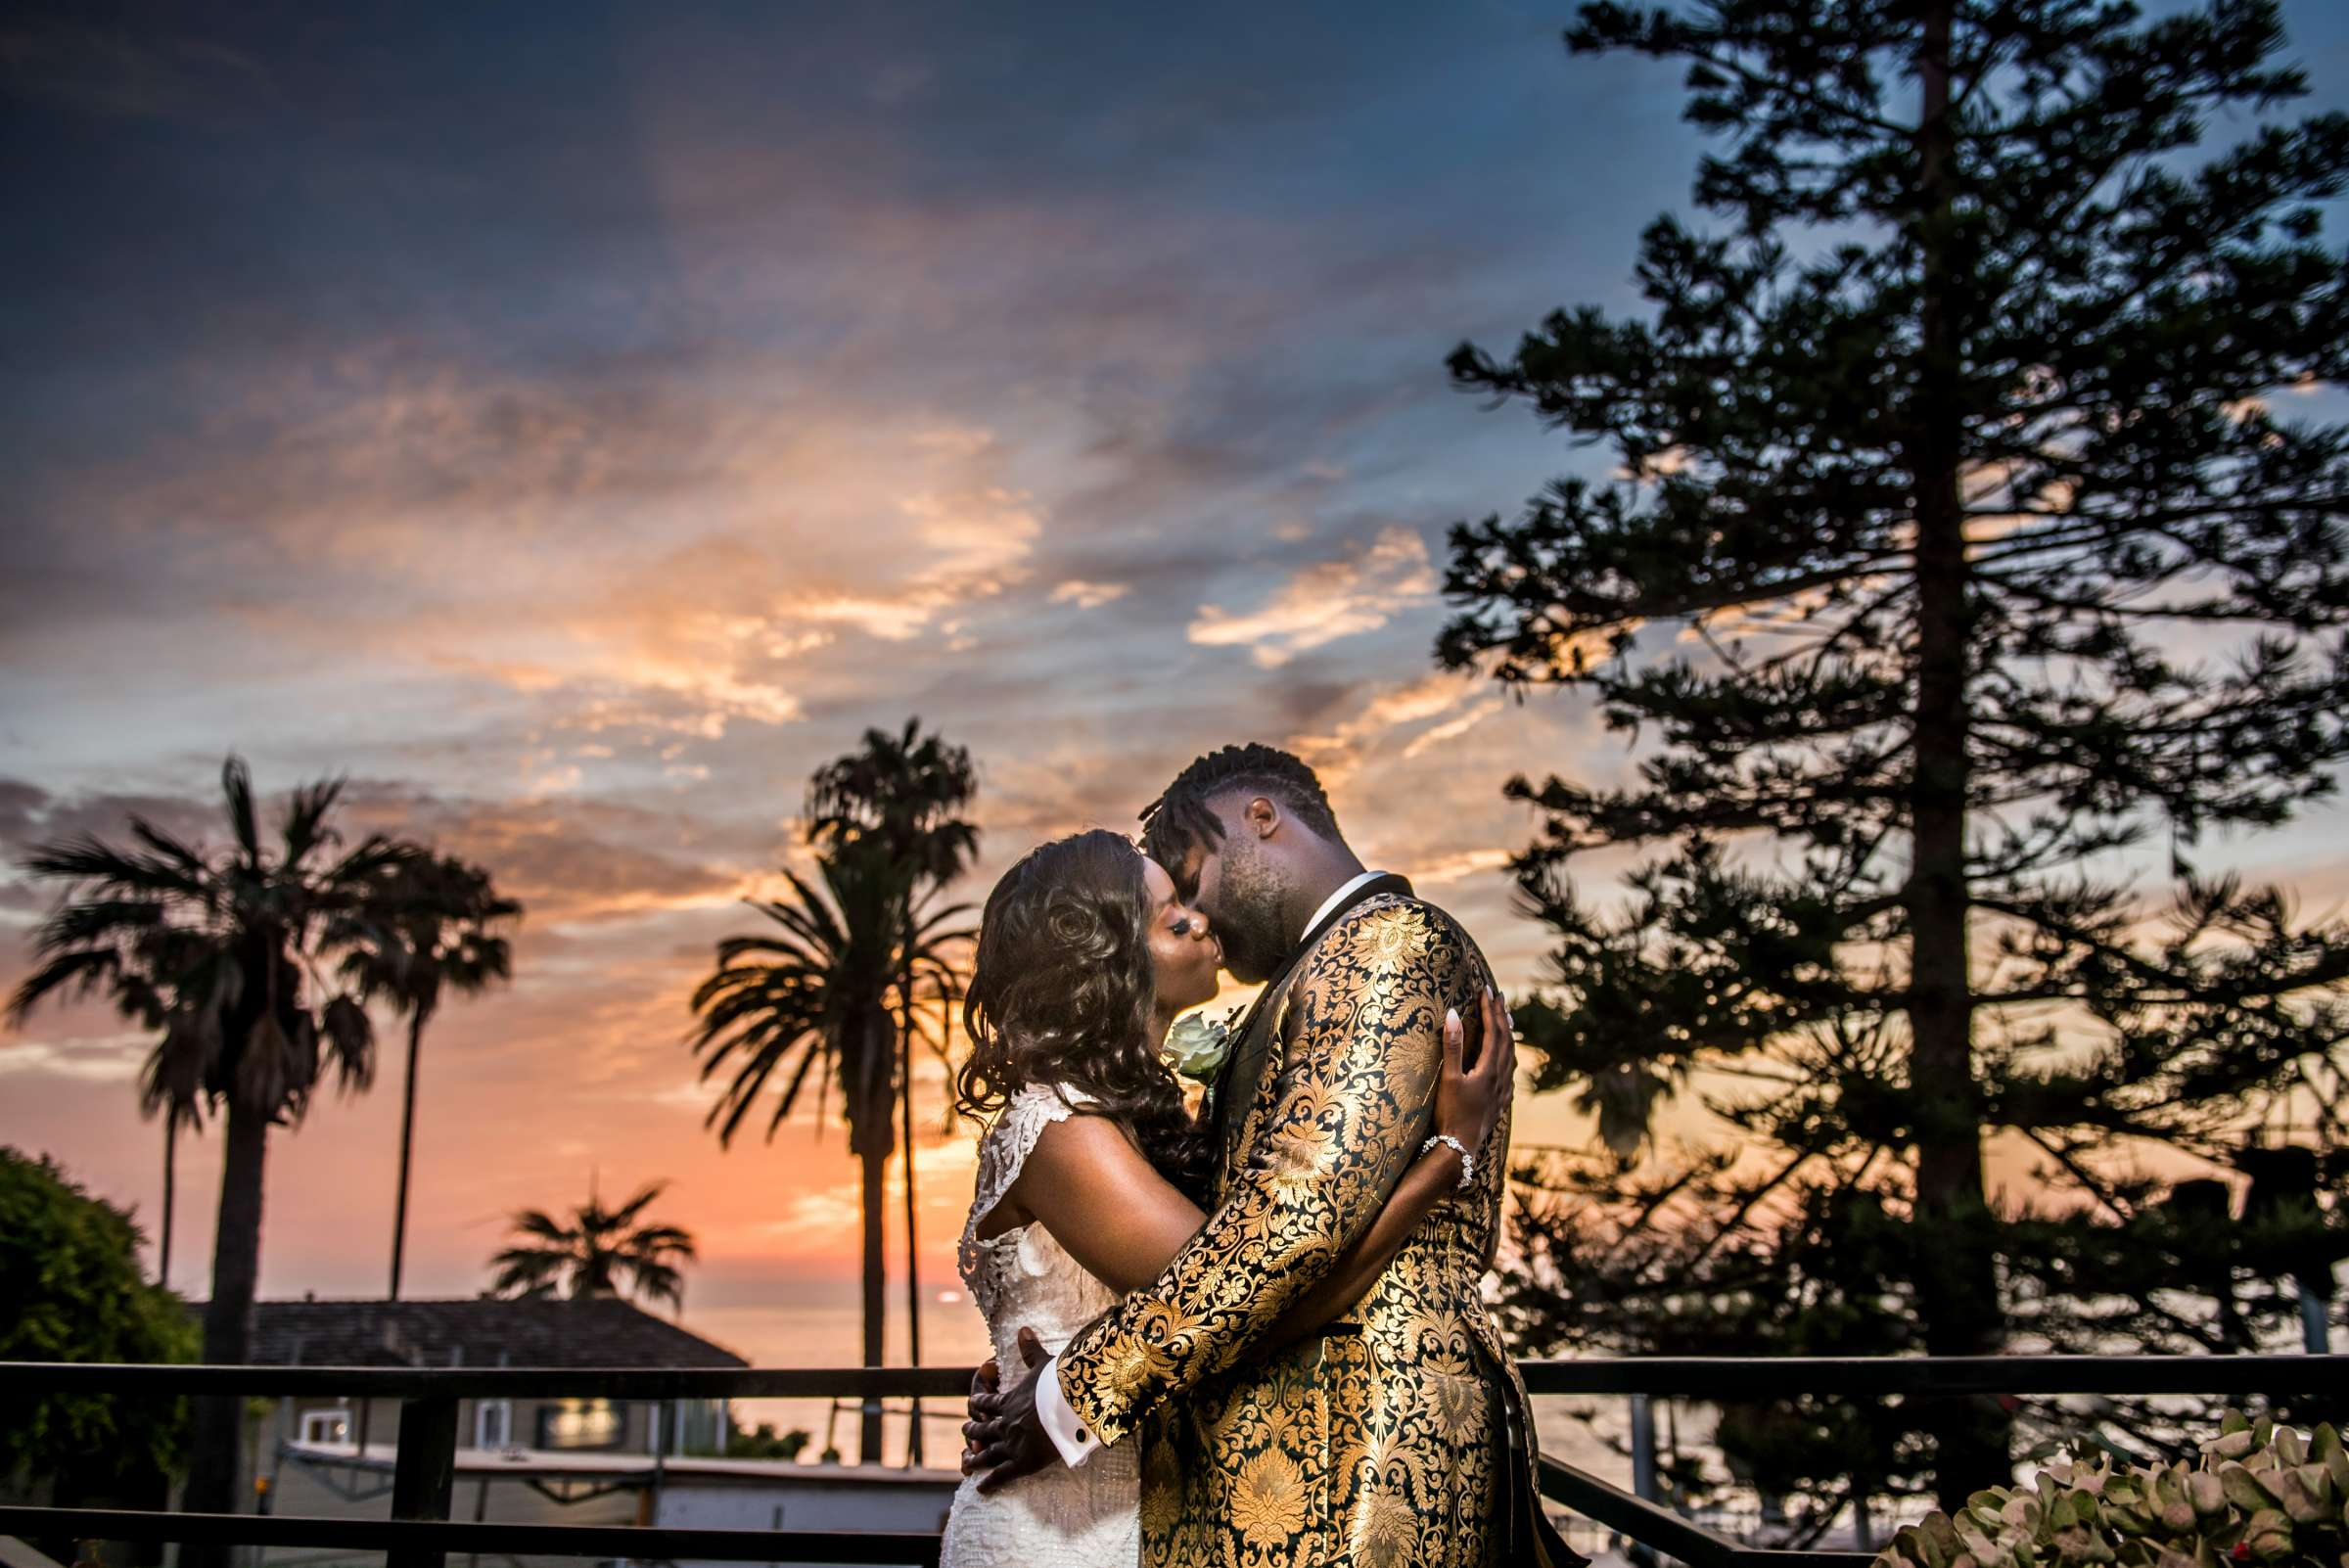 Wedding coordinated by SD Weddings by Gina, Adrienne and Kadeem Wedding Photo #102 by True Photography